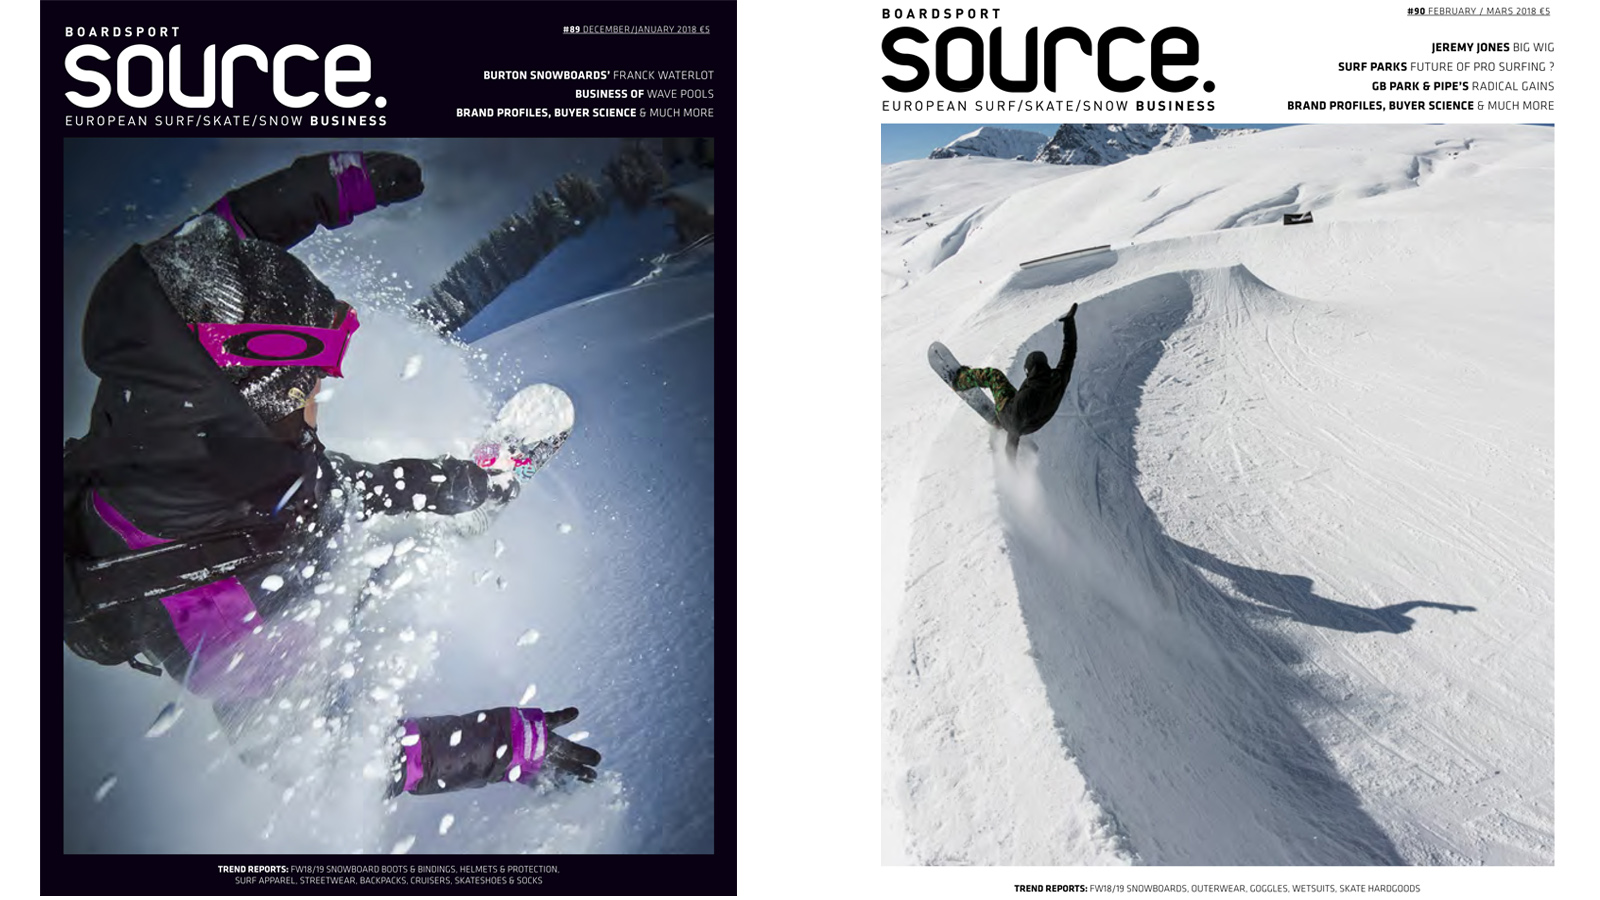 SOURCE Covers Entries